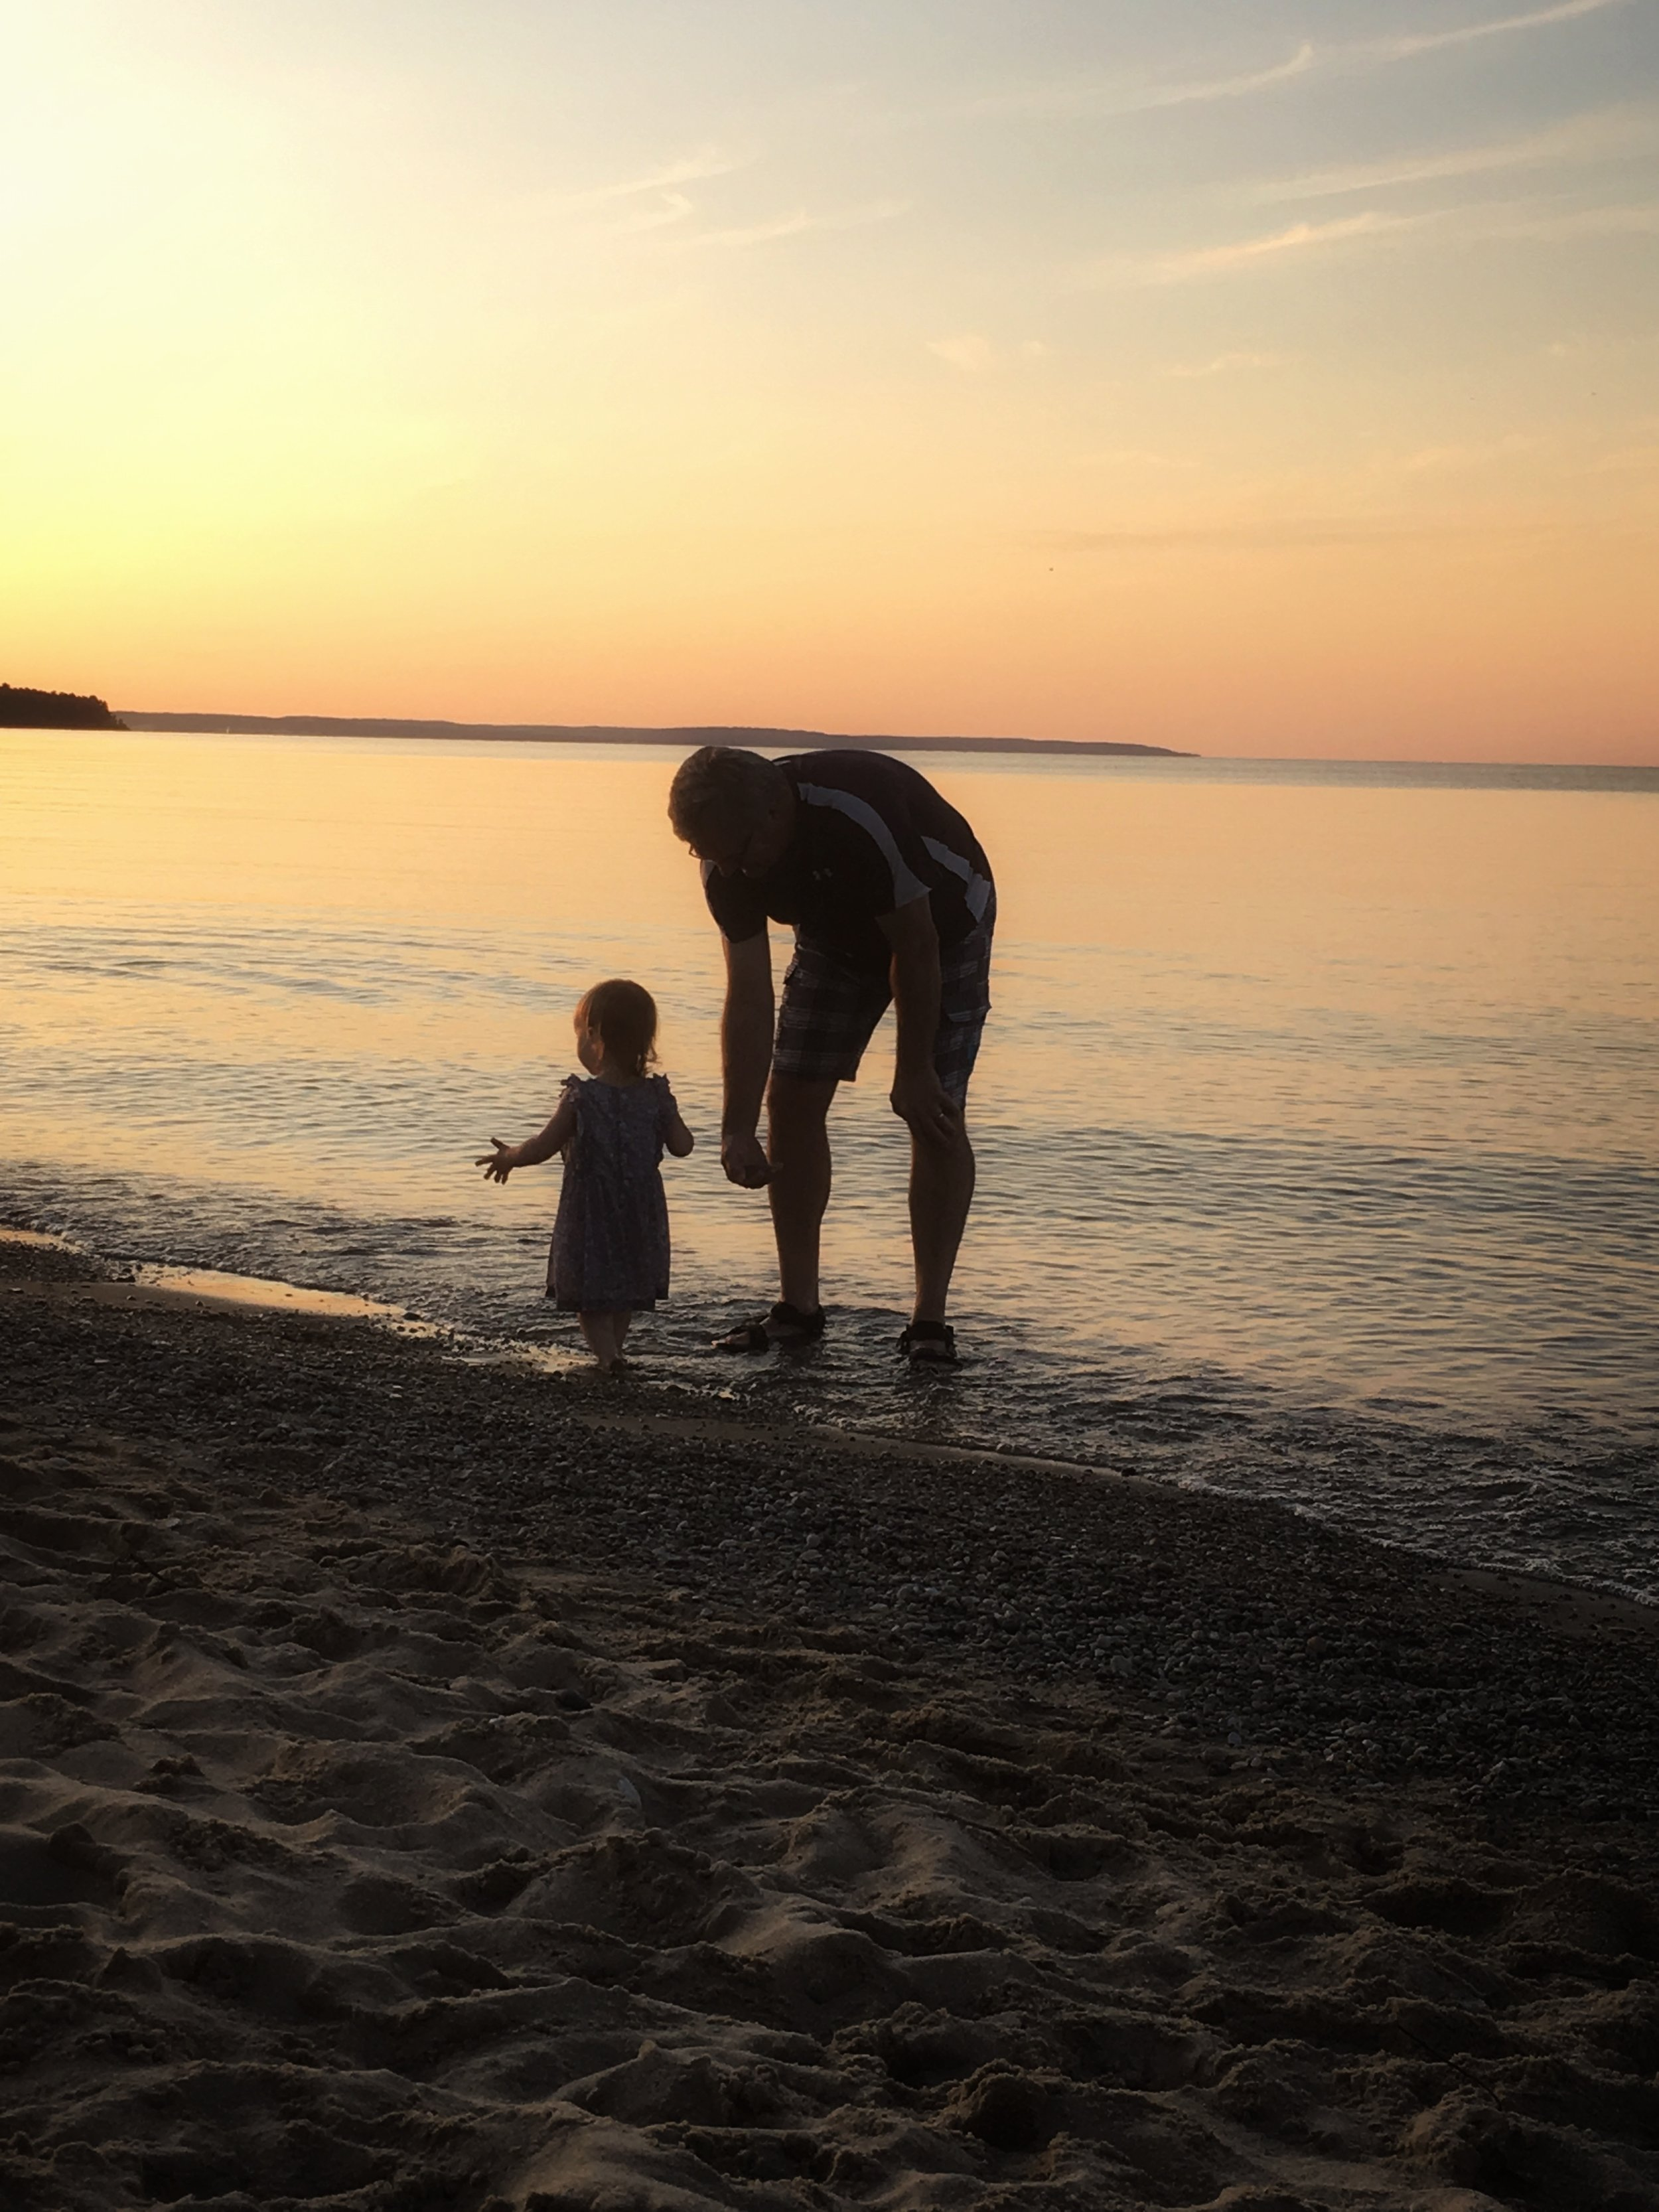 My 19 month-old daughter at the beach with her grandpa on a recent family vacation to Northern Michigan.